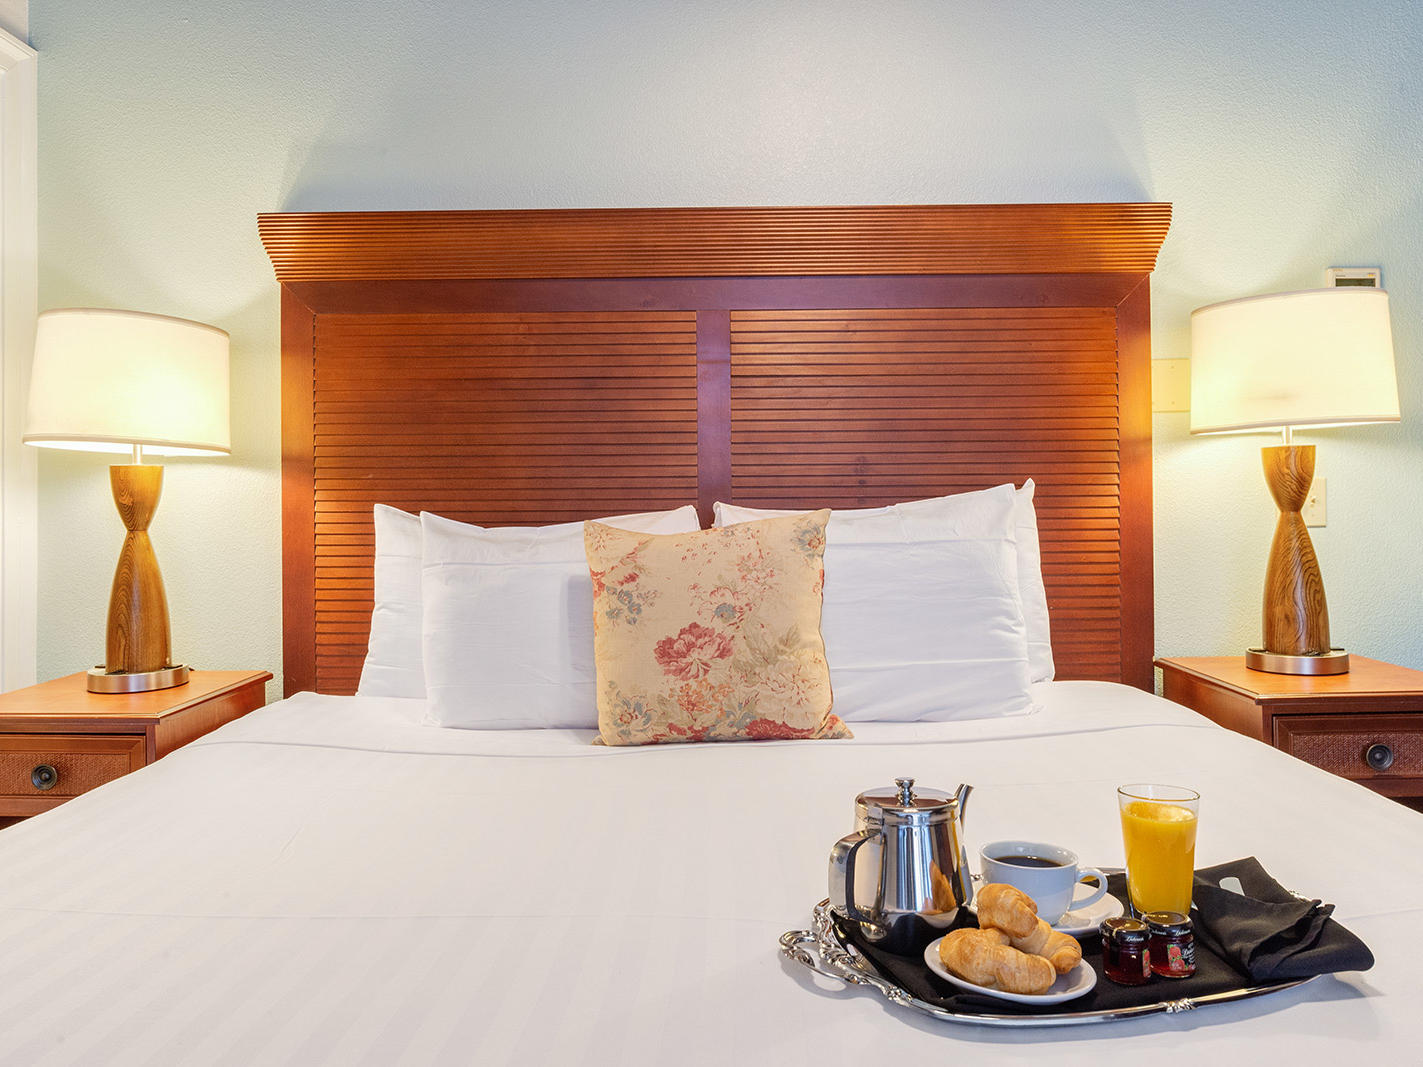 Breakfast on bed in the Intimate Room at St. James Hotel